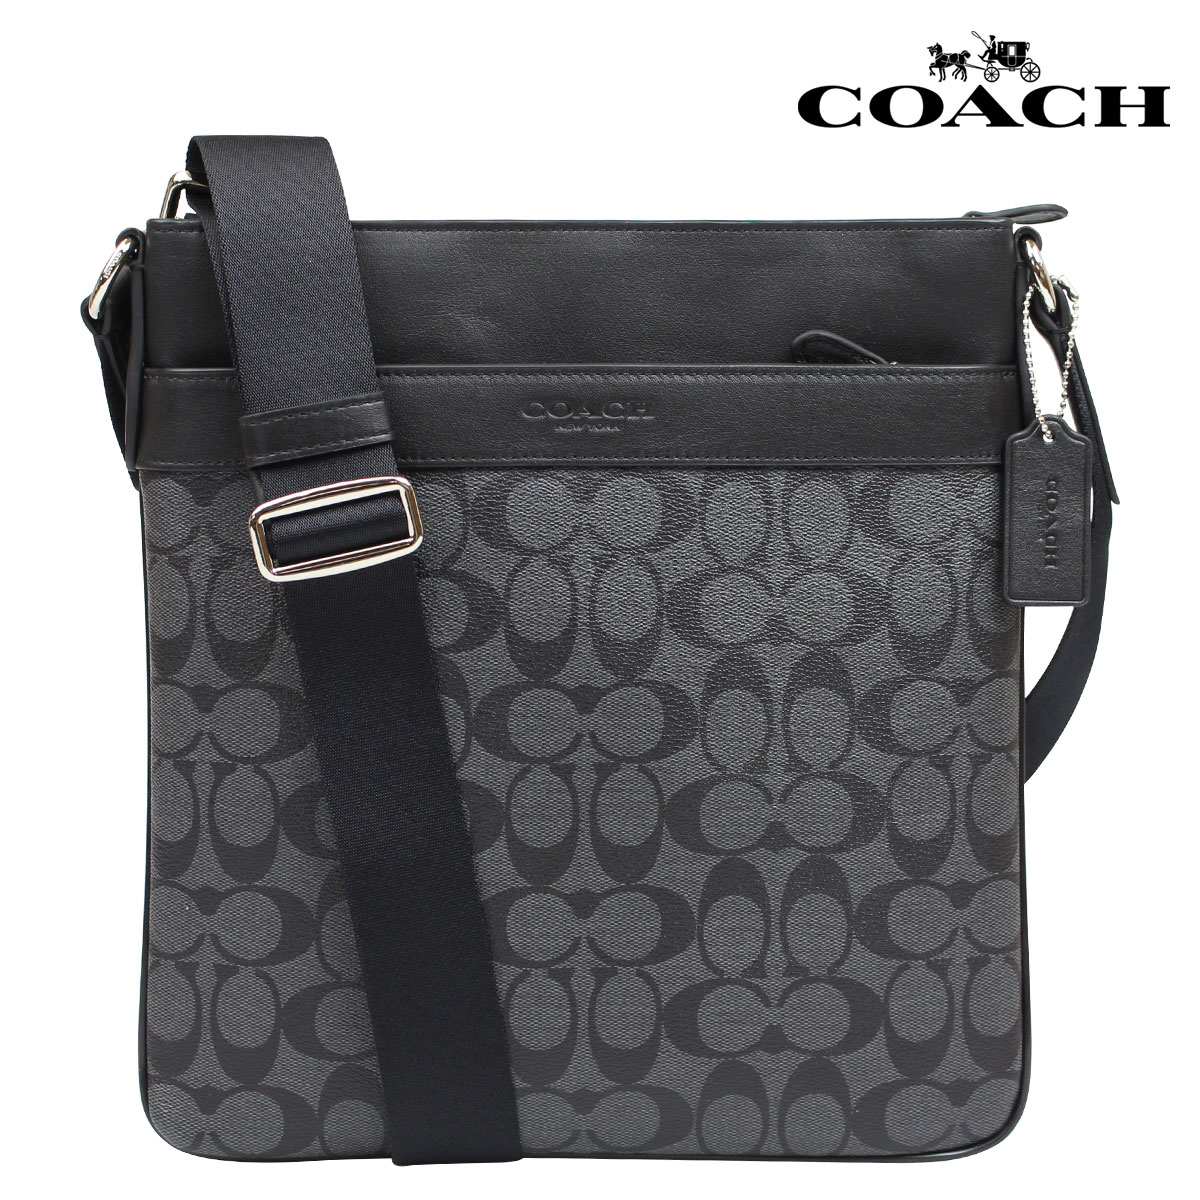 e2c4535701c7 Whats up Sports  COACH coach men s bags shoulder bag F71877 charcoal ...